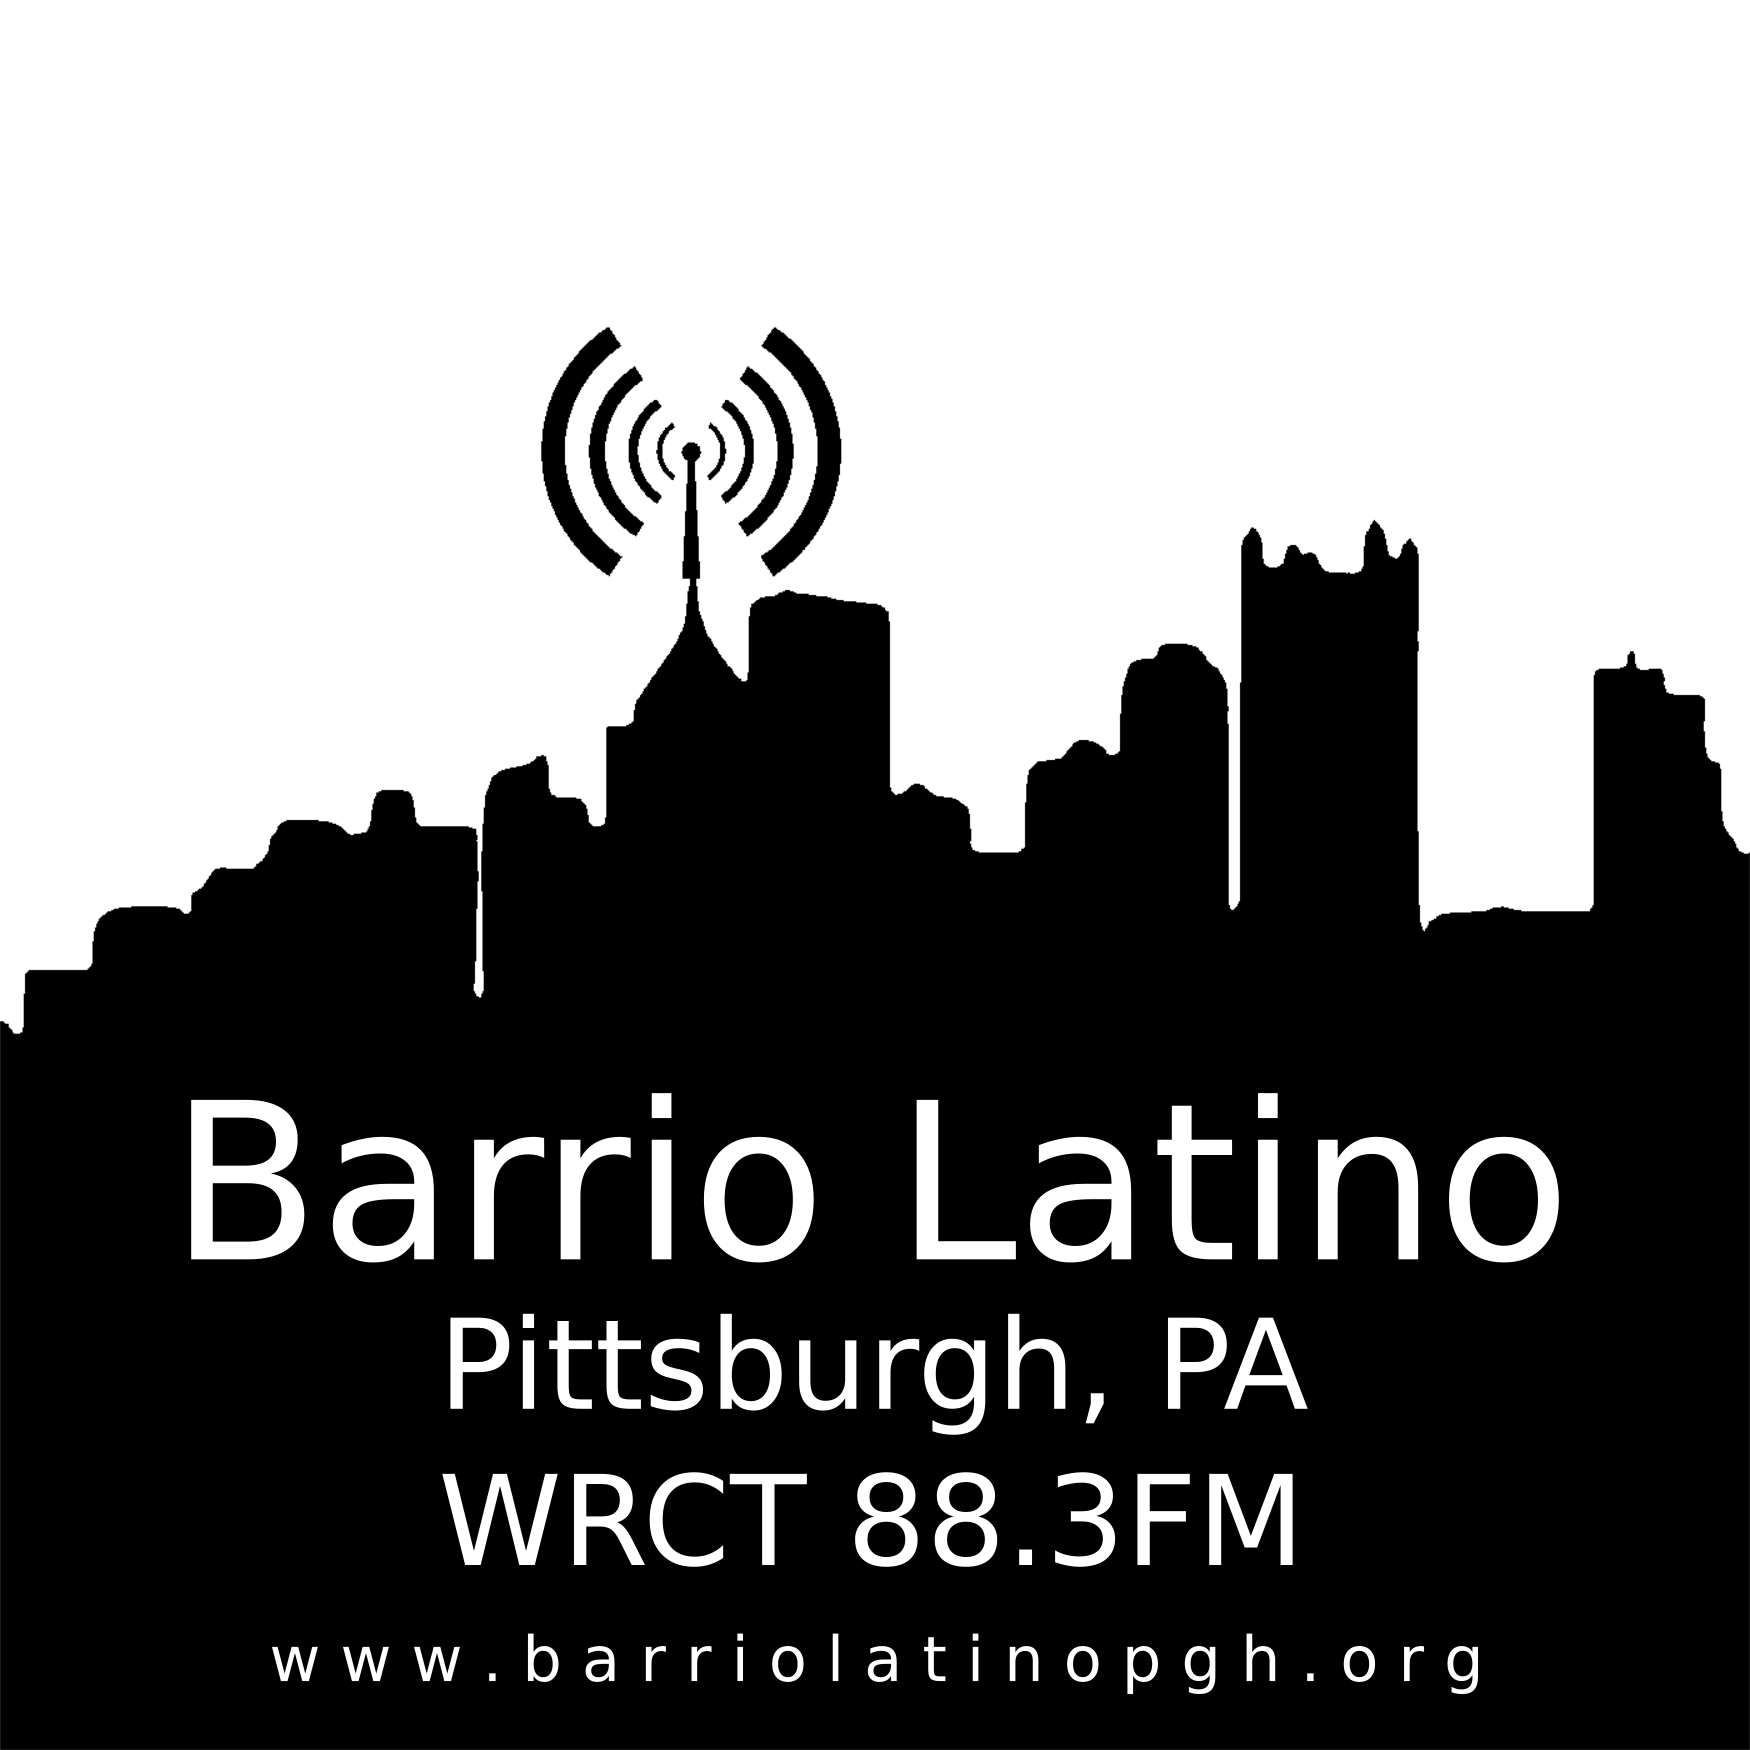 Barrio Latino WRCT 88.3FM Pittsburgh